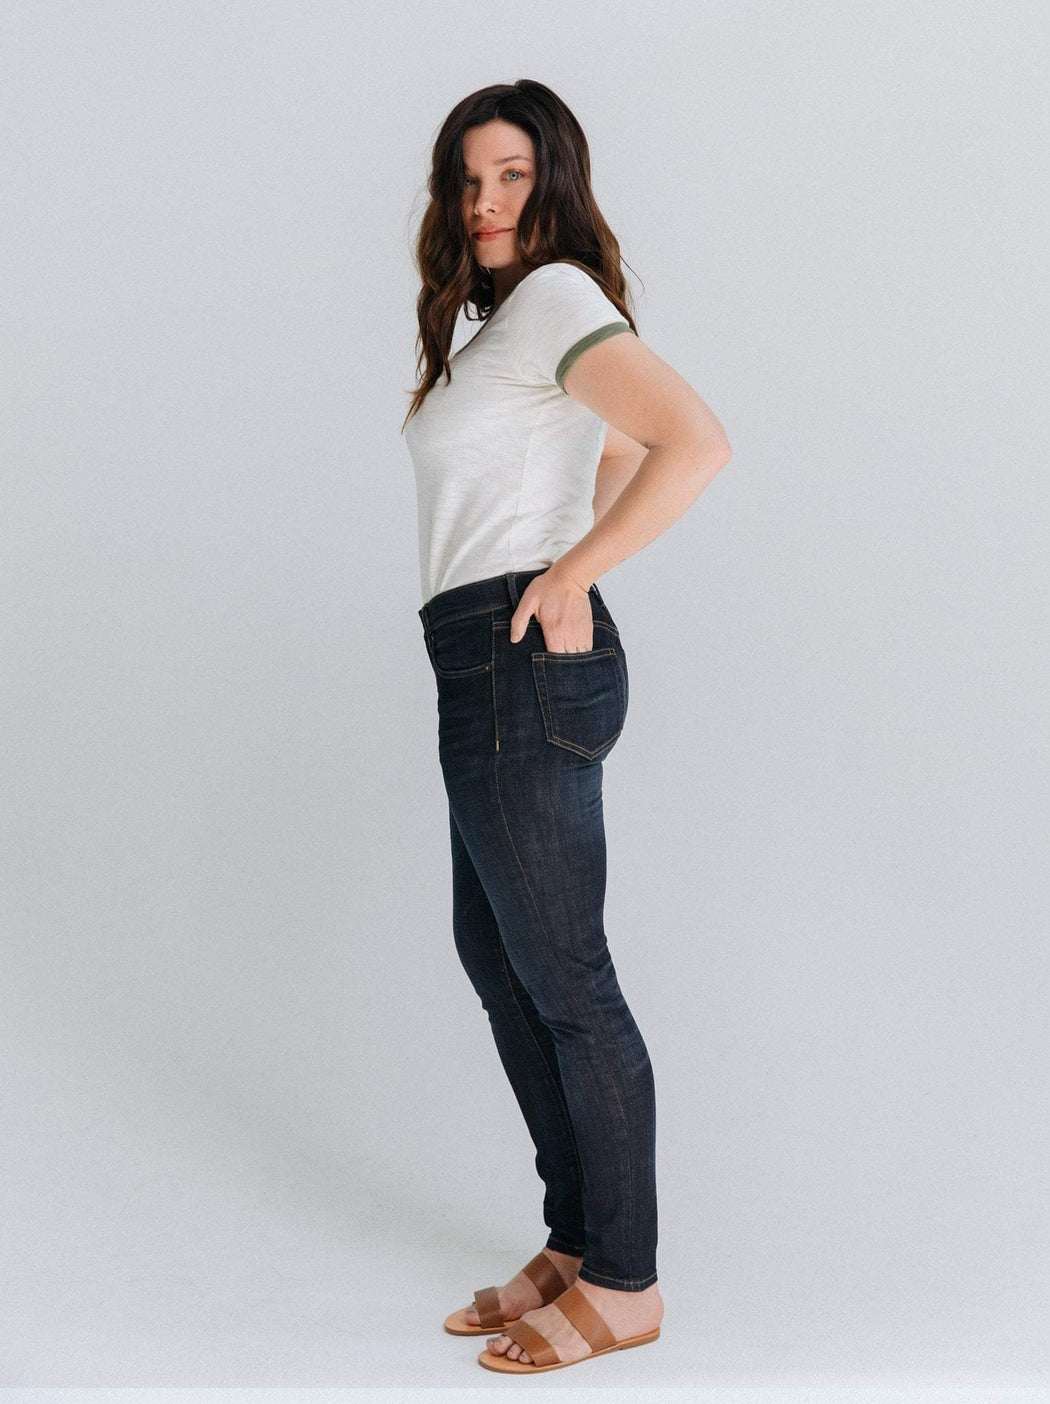 The Anya Slim Fit Jean by Able